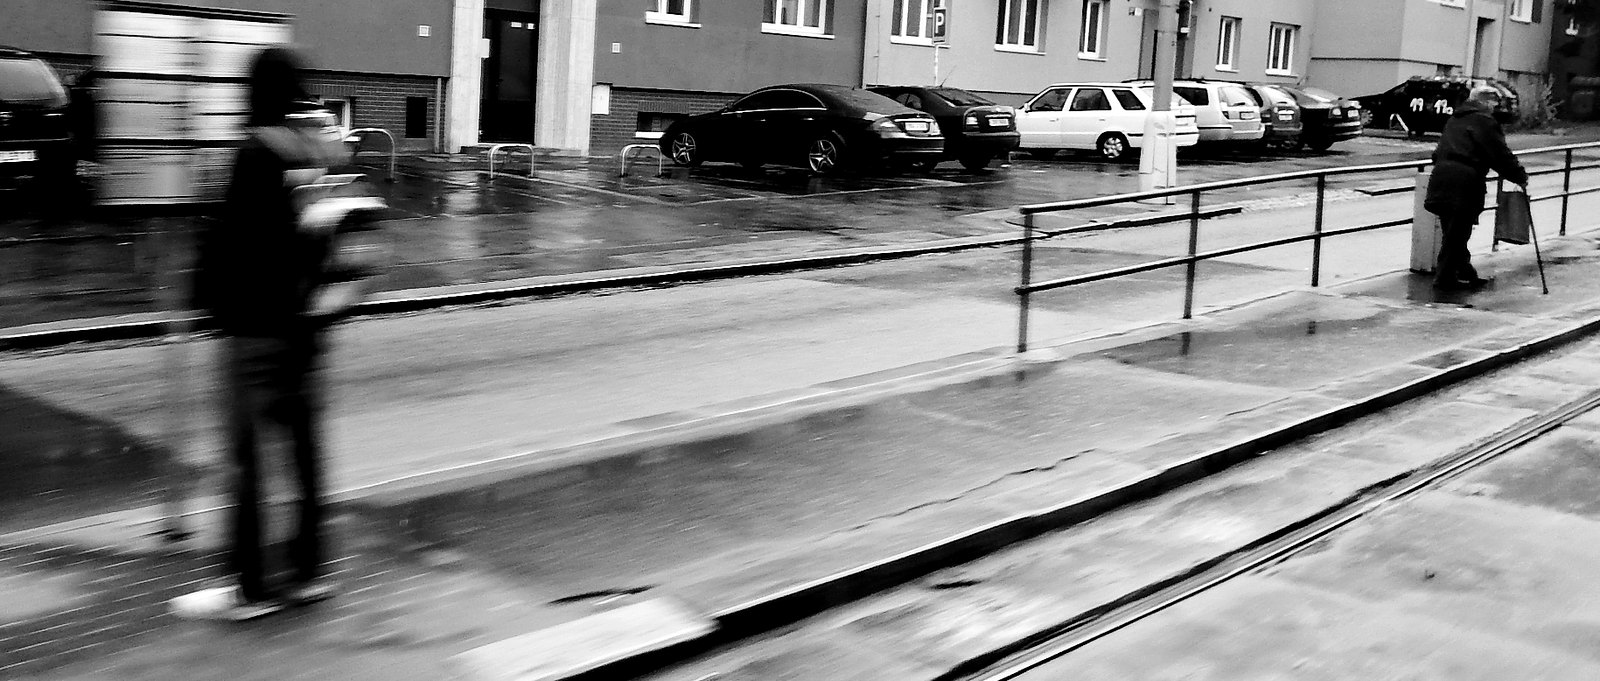 Tram Stop taken from Moving Tram